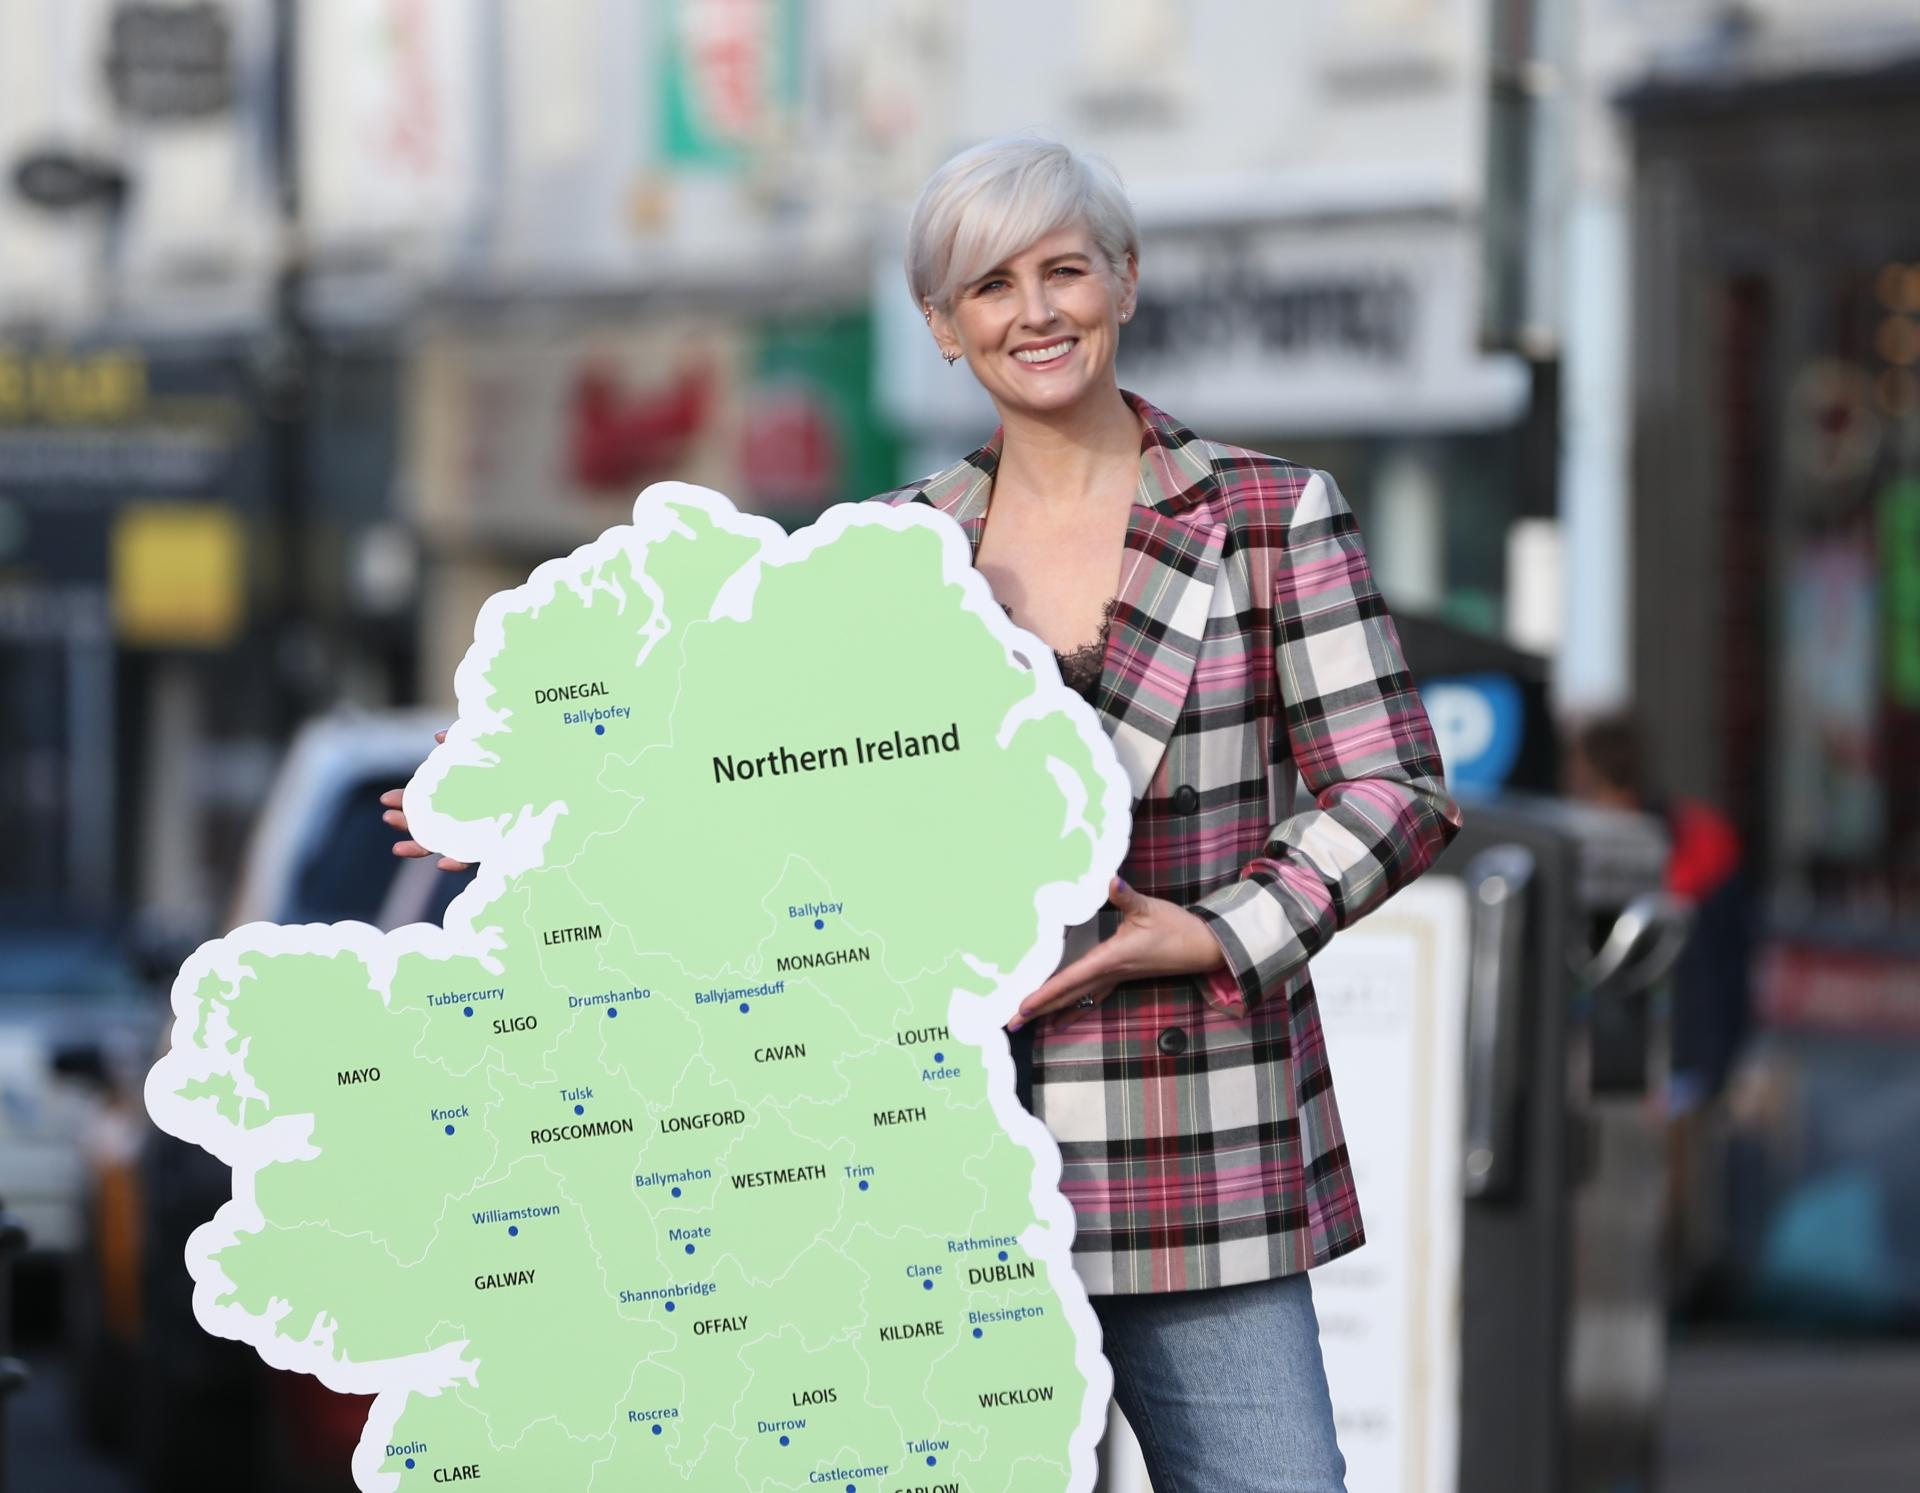 Home is where the park is - The Irish Times